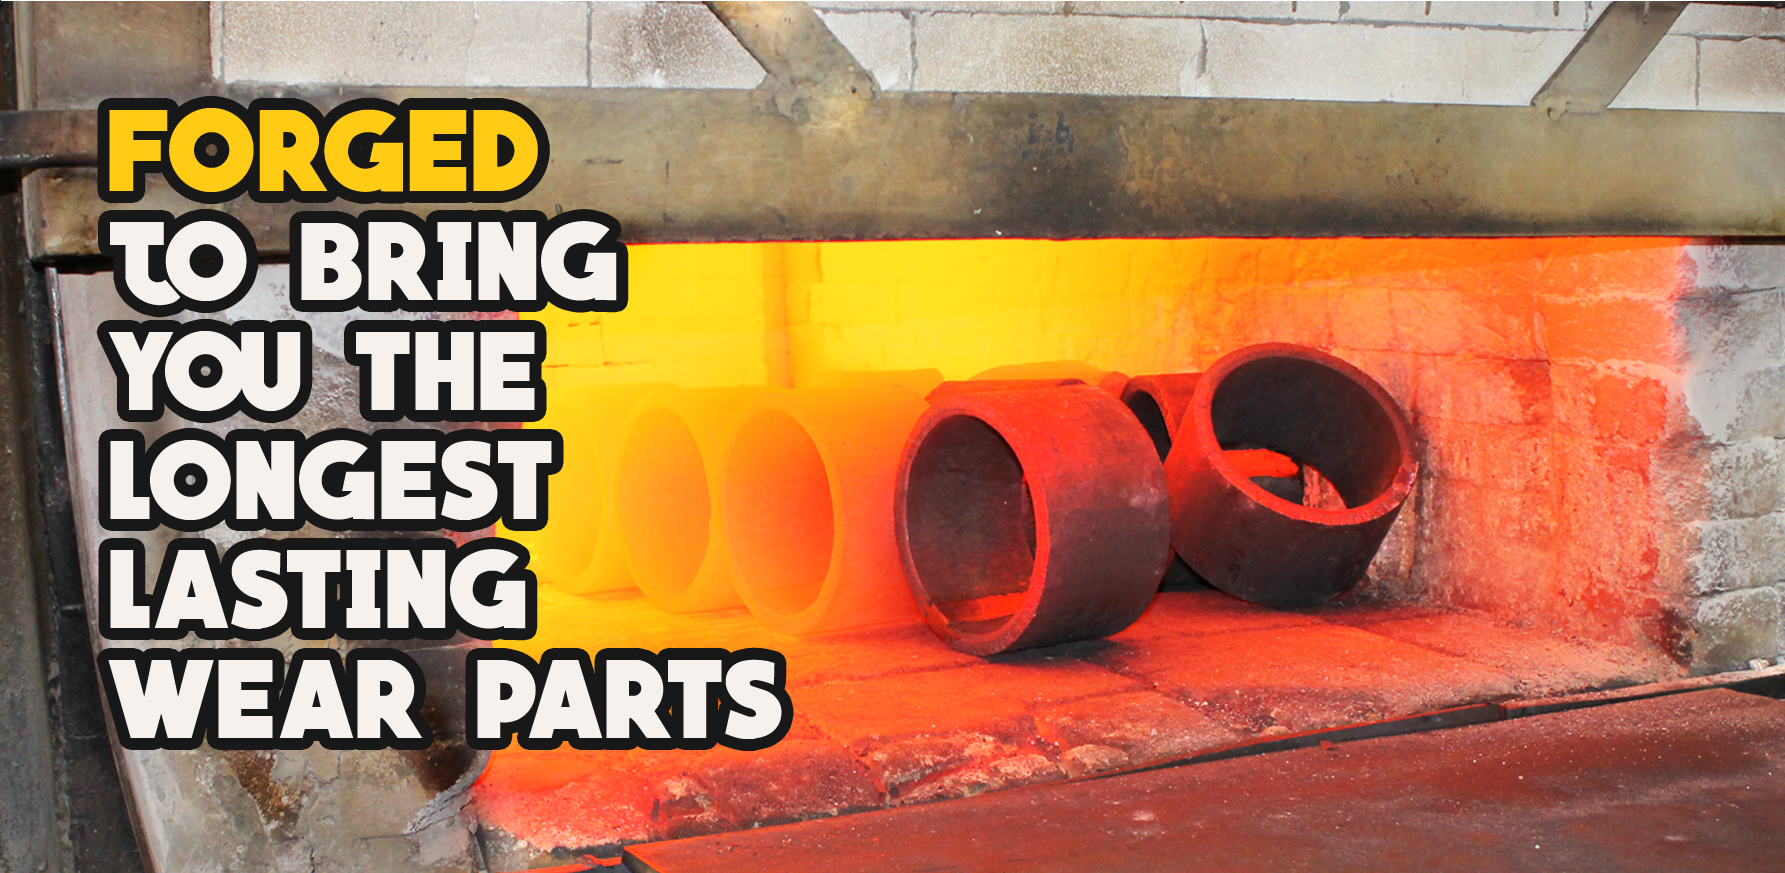 Forged to Bring You the Longest Last Wear Parts by Wescott Steel